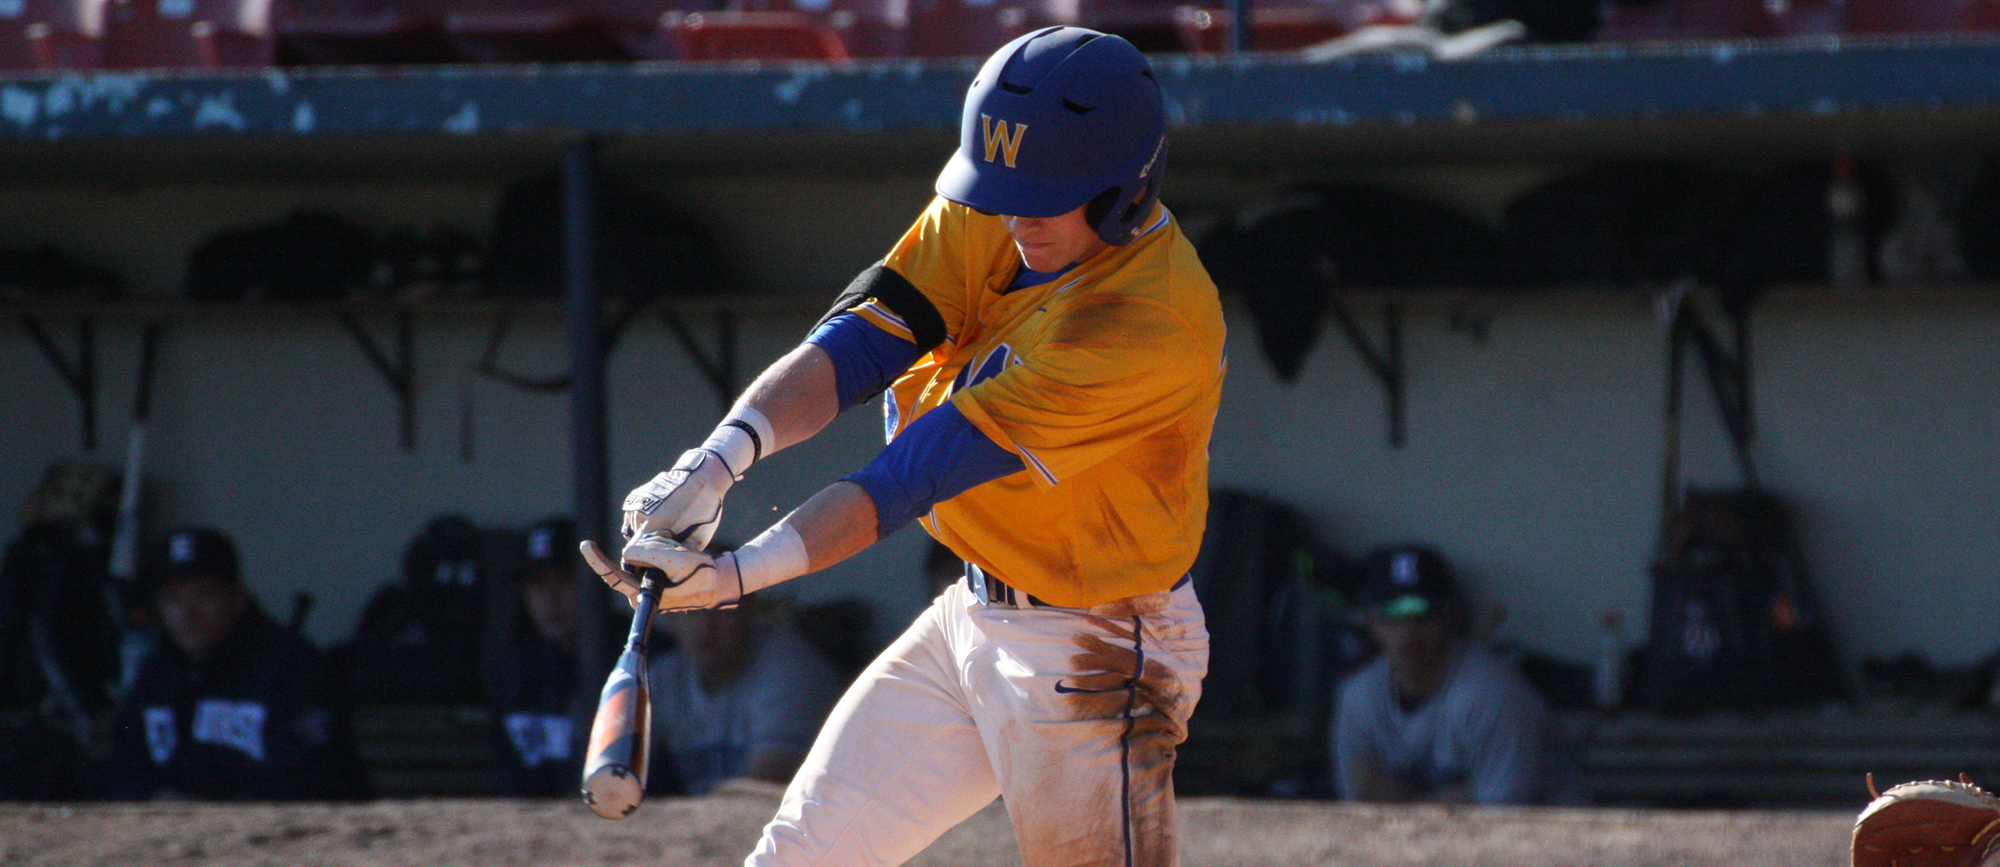 Junior Joe Cassella went 2-for-2 with one RBI in the Golden Bears' 11-1 loss to Mitchell on Friday. (Photo by Jeff Rosenblatt)